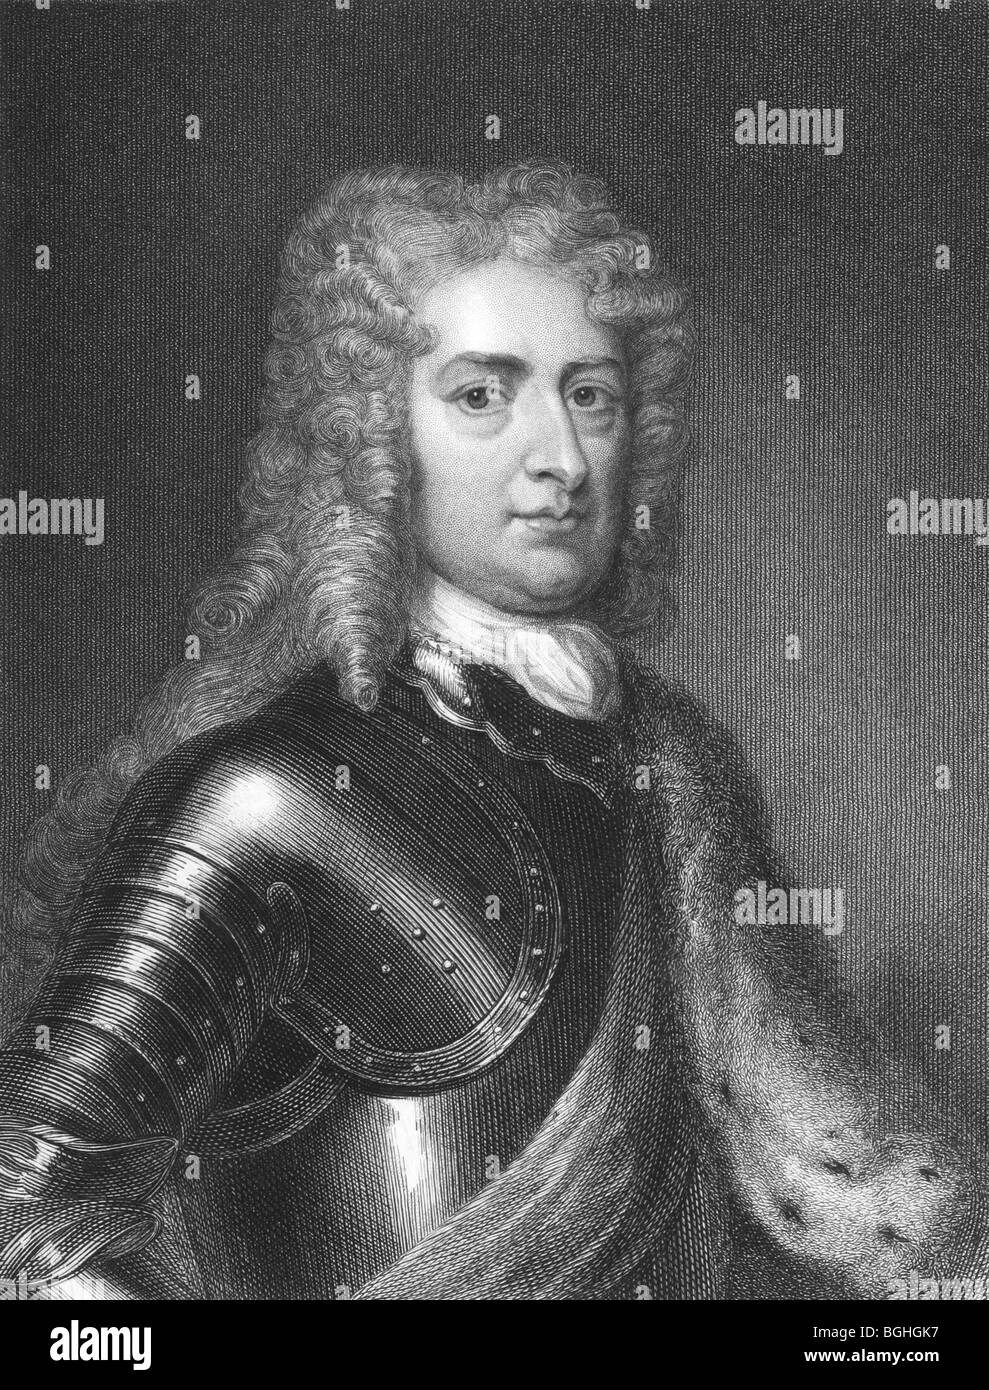 1st Duke of Marlborough, John Churchill on engraving from the 1850s. Prominent English soldier and statesman . - Stock Image